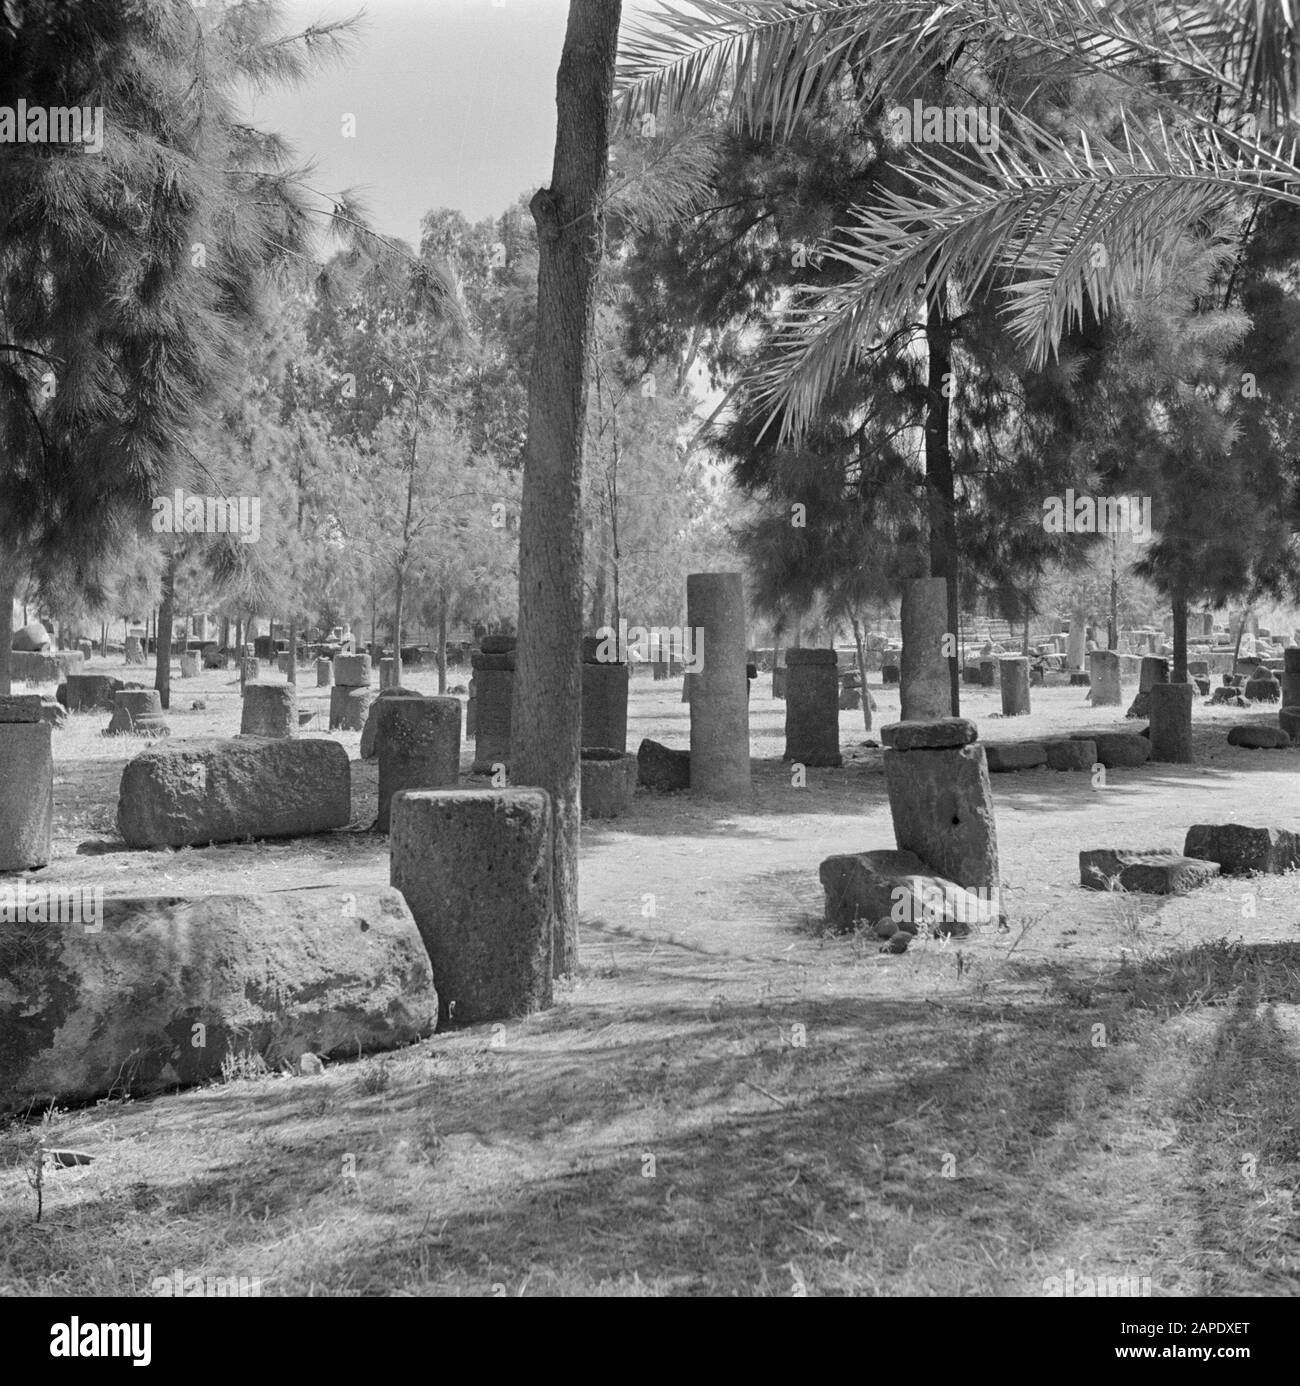 Israel 1948-1949:Galilee Description: Archaeological finds - including wine presses and architectural fragments - exhibited in Kapernaum on the shore of Lake Genesareth/Tiberias Date: 1948 Location: Israel, Kapernaum, Tiberias Keywords: archeology, trees, history, landscapes, exhibitions, viticulture, columns Stock Photo